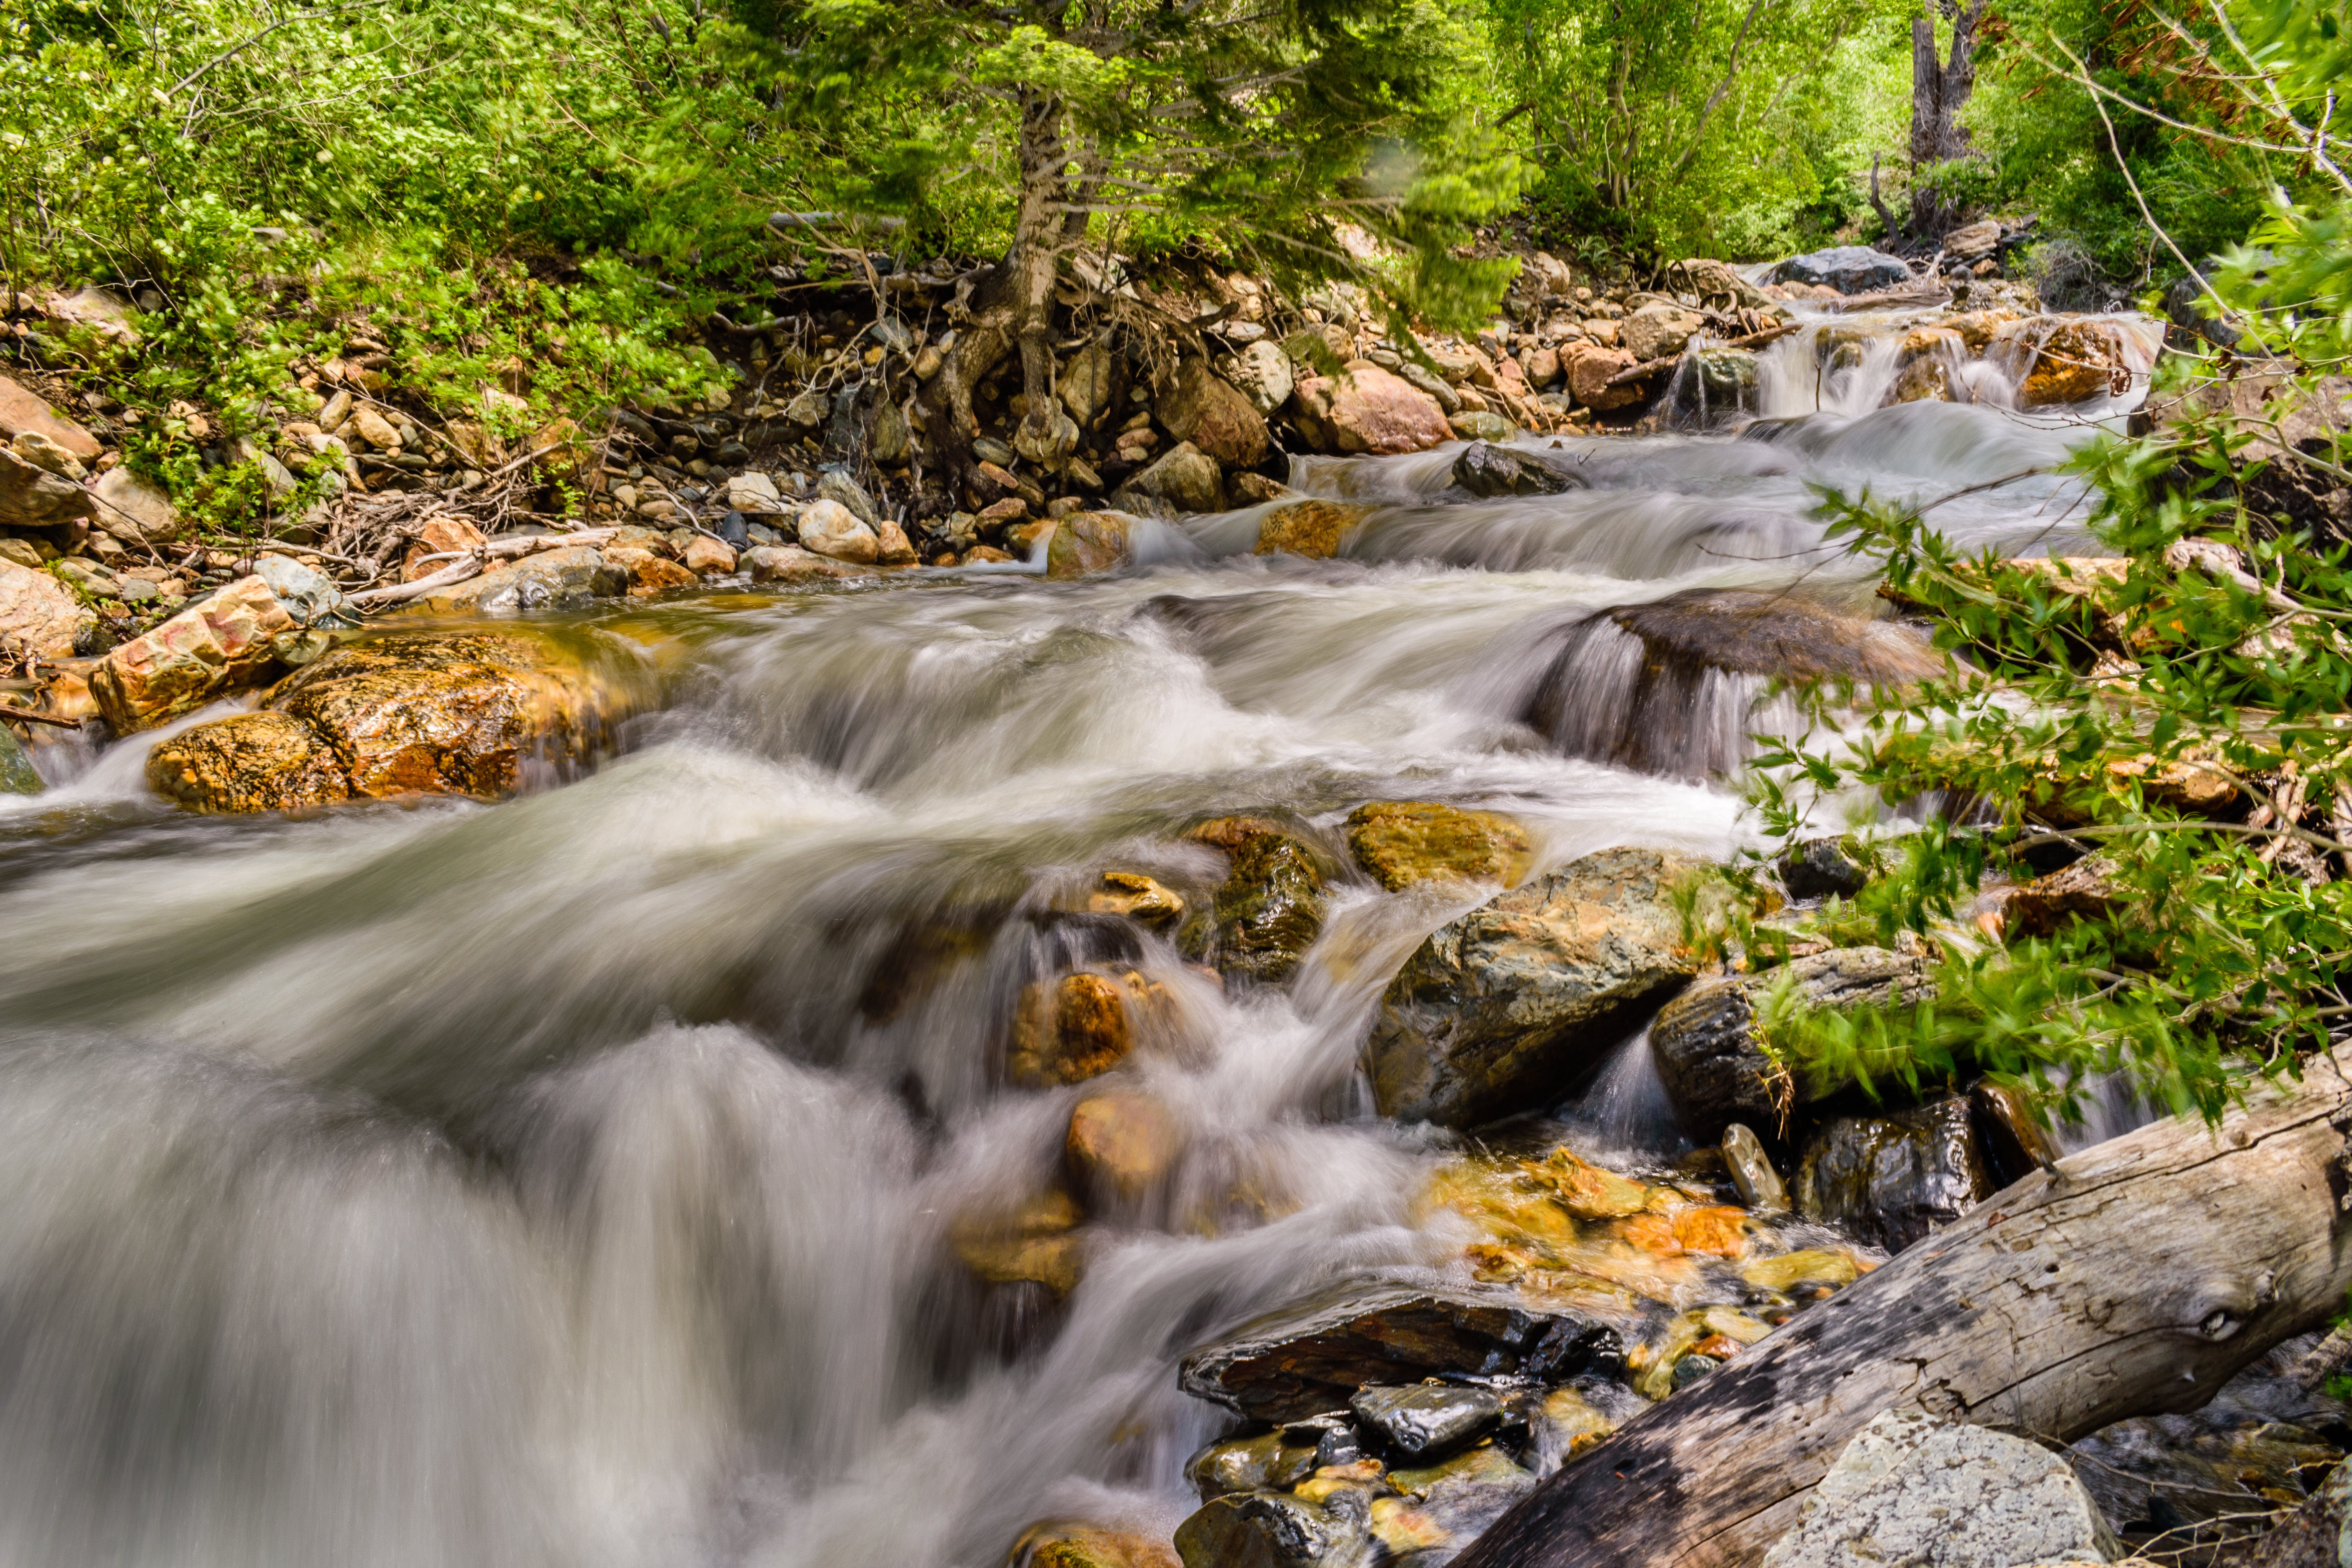 Landscape Photography Of Water Flowing